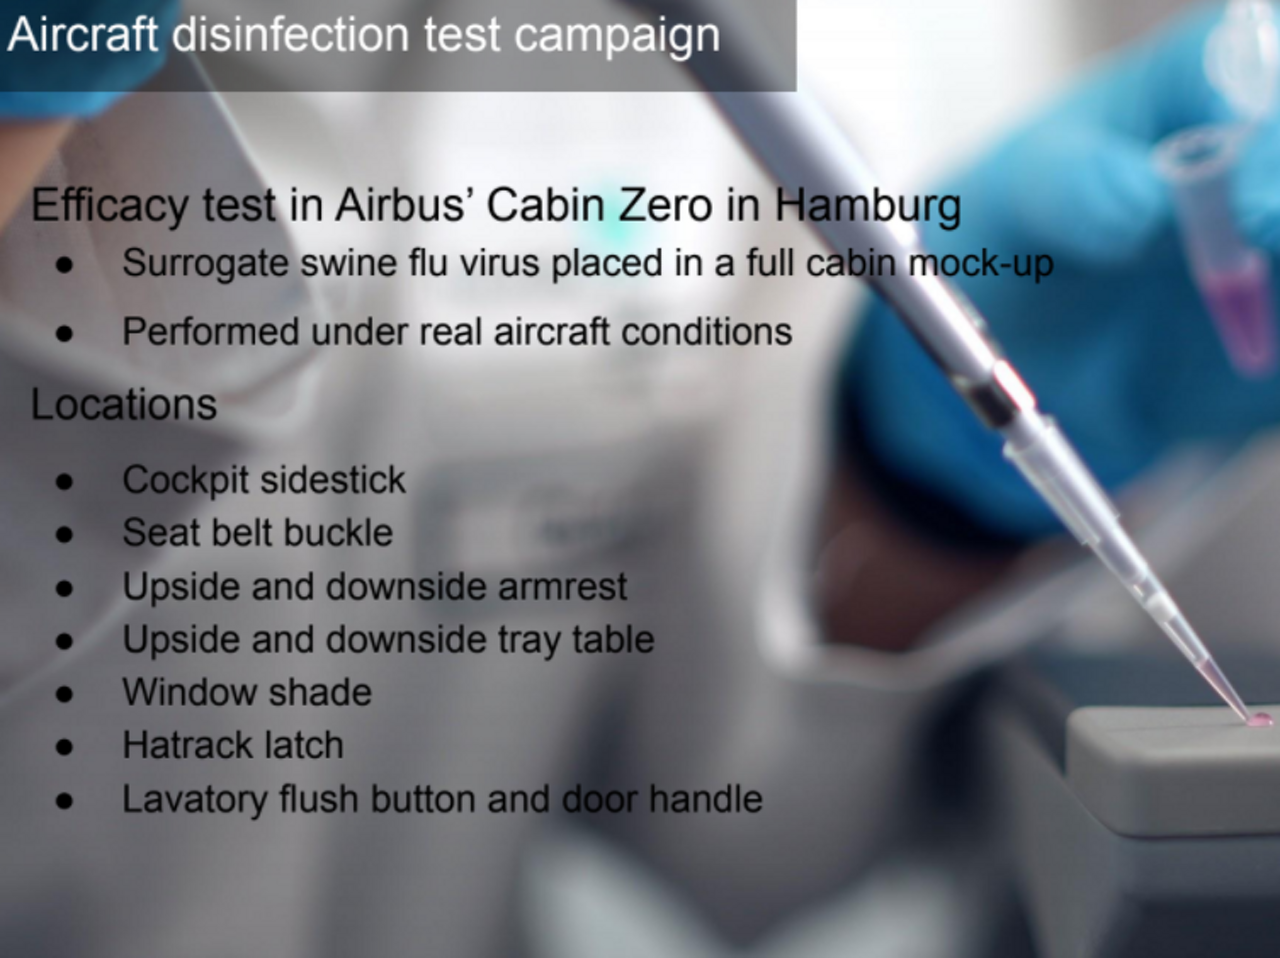 2b Aircraft Disinfection Test  Campaign